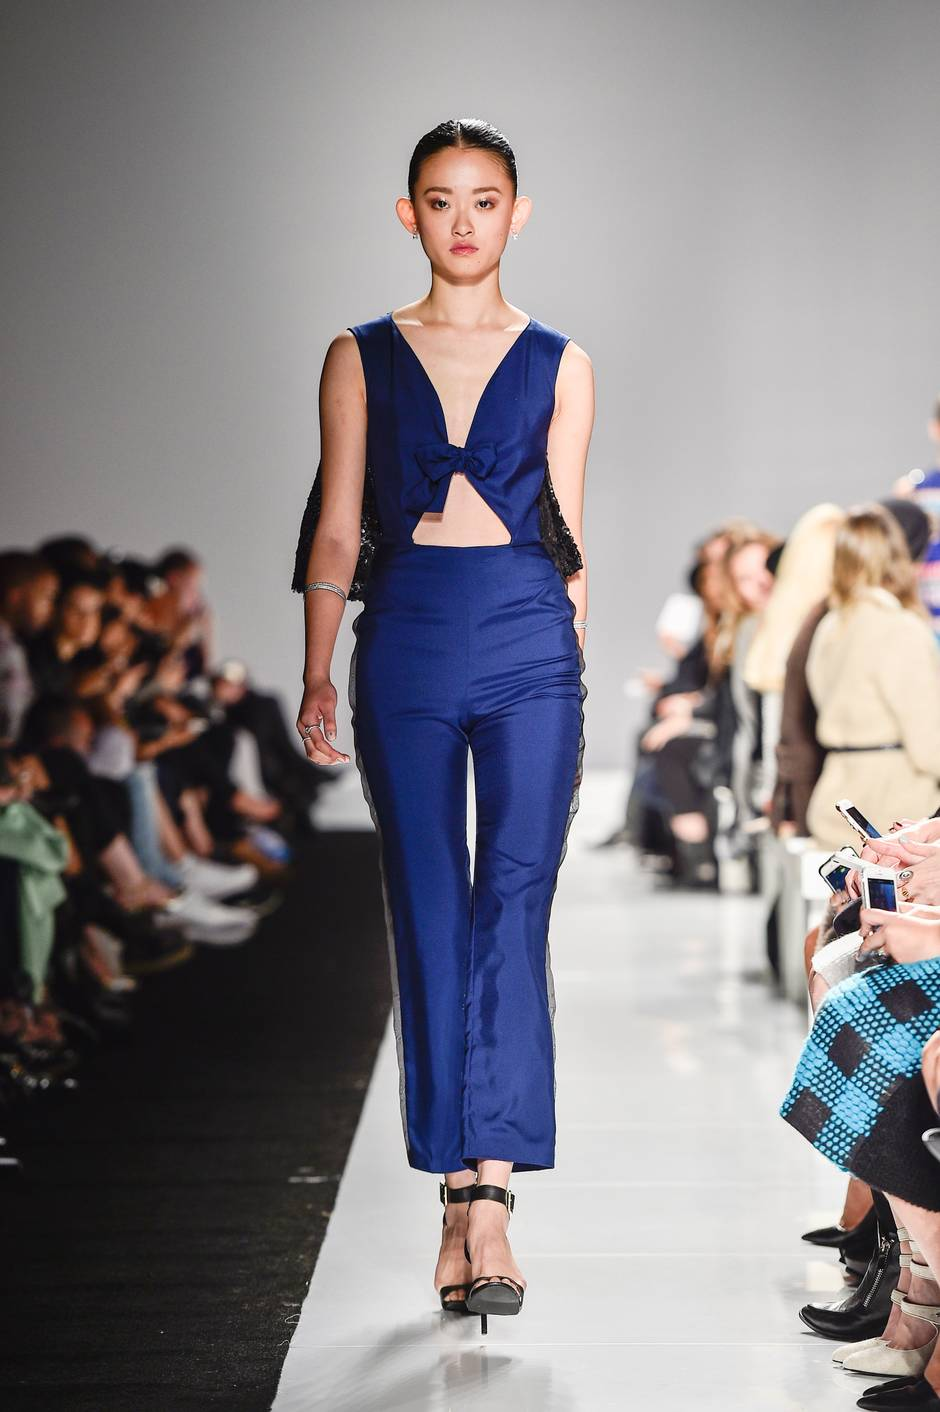 The Three Best Looks From Day 1 Of Toronto Fashion Week The Globe And Mail